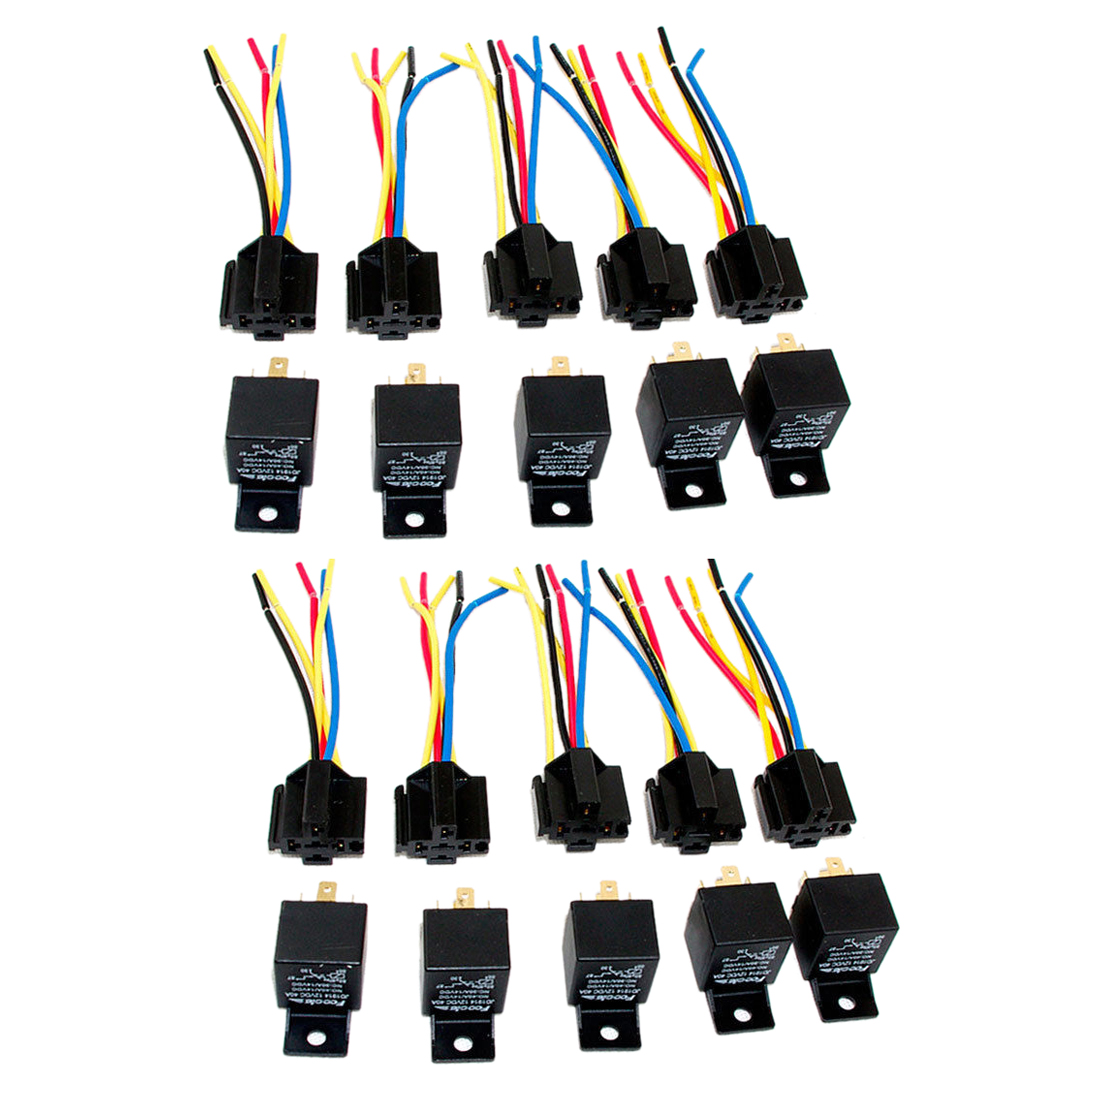 medium resolution of lot10 new 12 volt 40 amp spdt automotive relay with wires harness socket in relays from home improvement on aliexpress com alibaba group